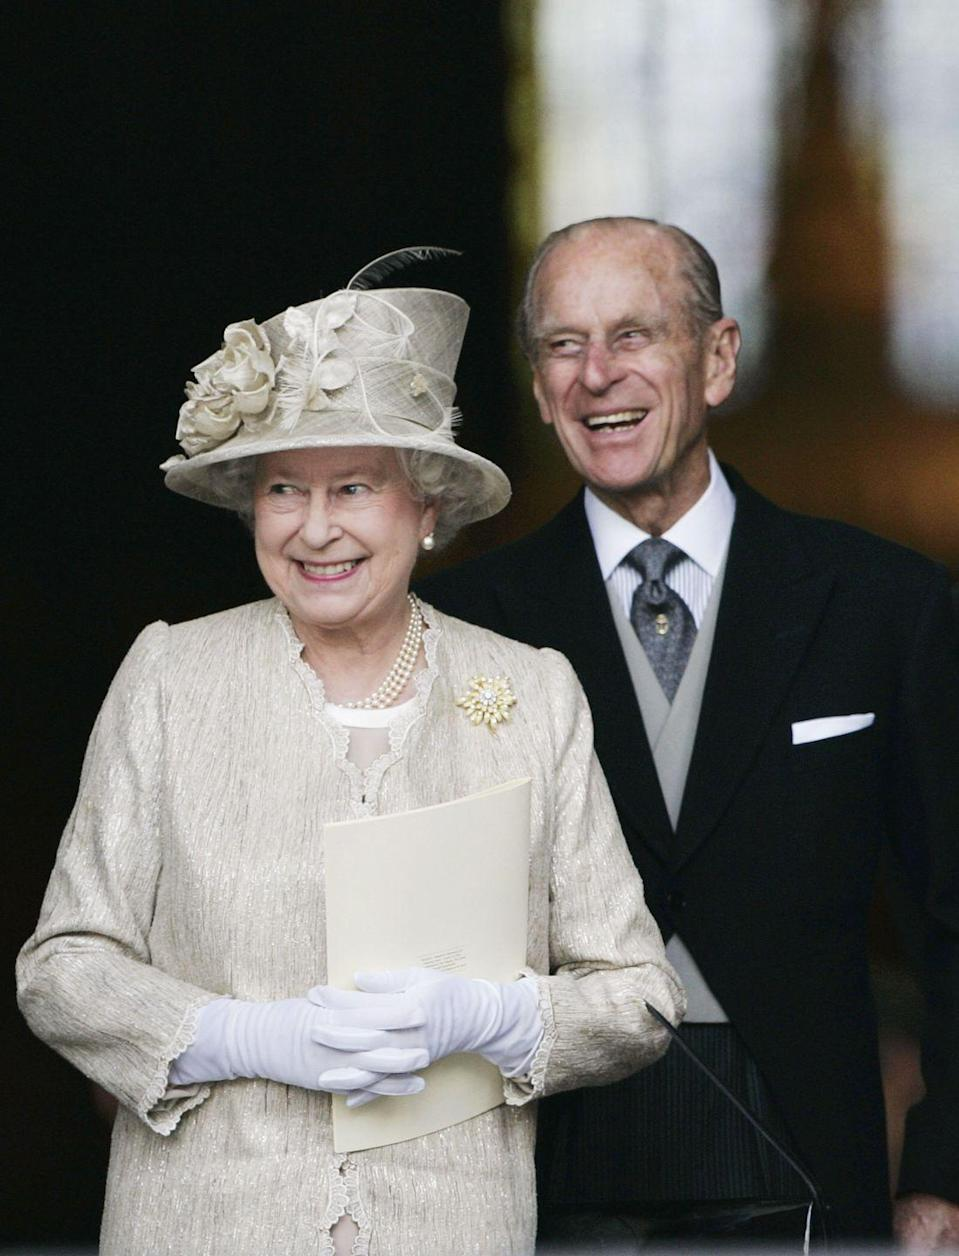 <p>Taking in the wedding celebrations at the marriage of their grandson Peter Phillips to Autumn Kelly at Windsor Castle.</p>